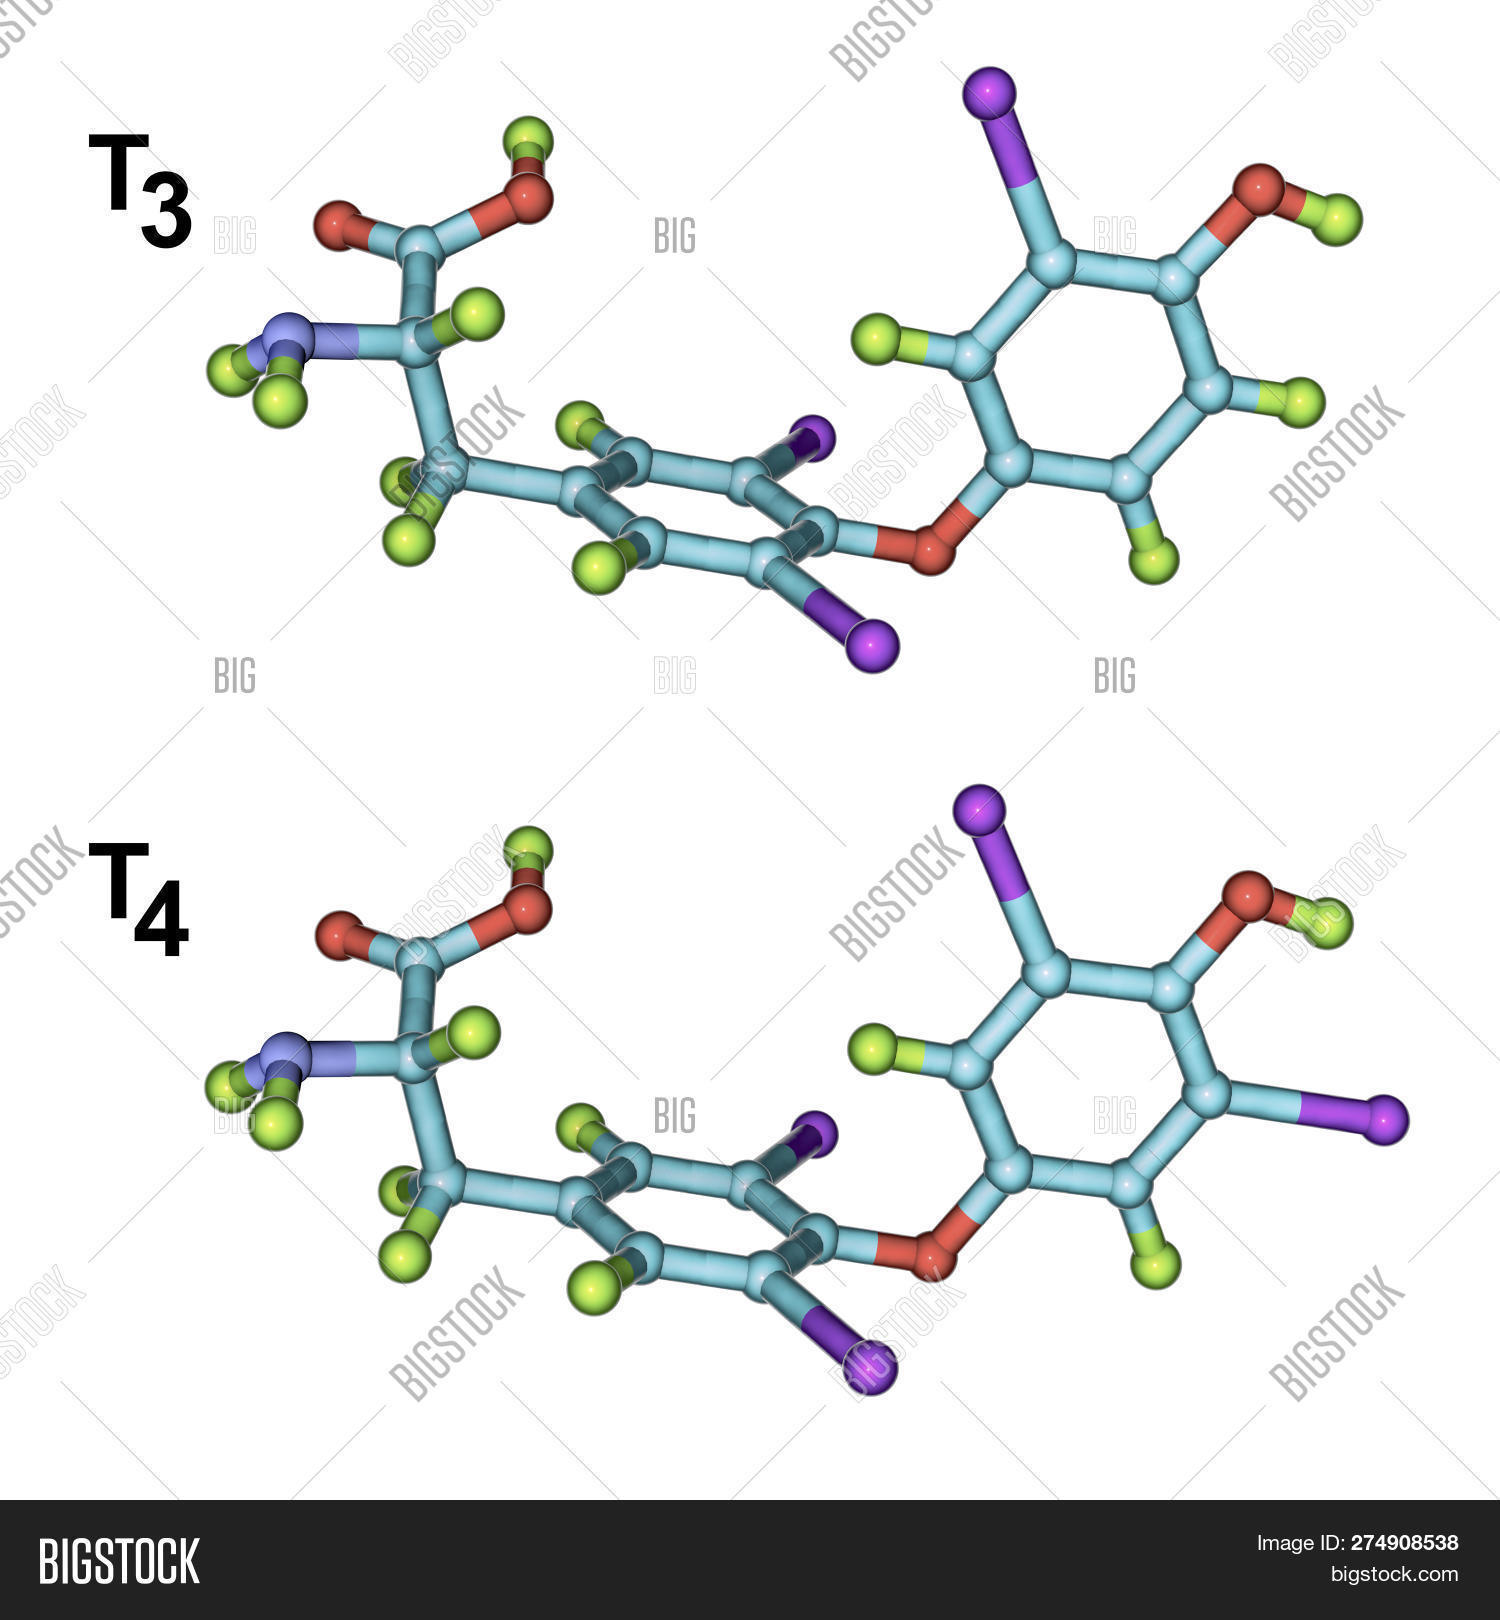 Molecules Thyroid Image & Photo (Free Trial) | Bigstock